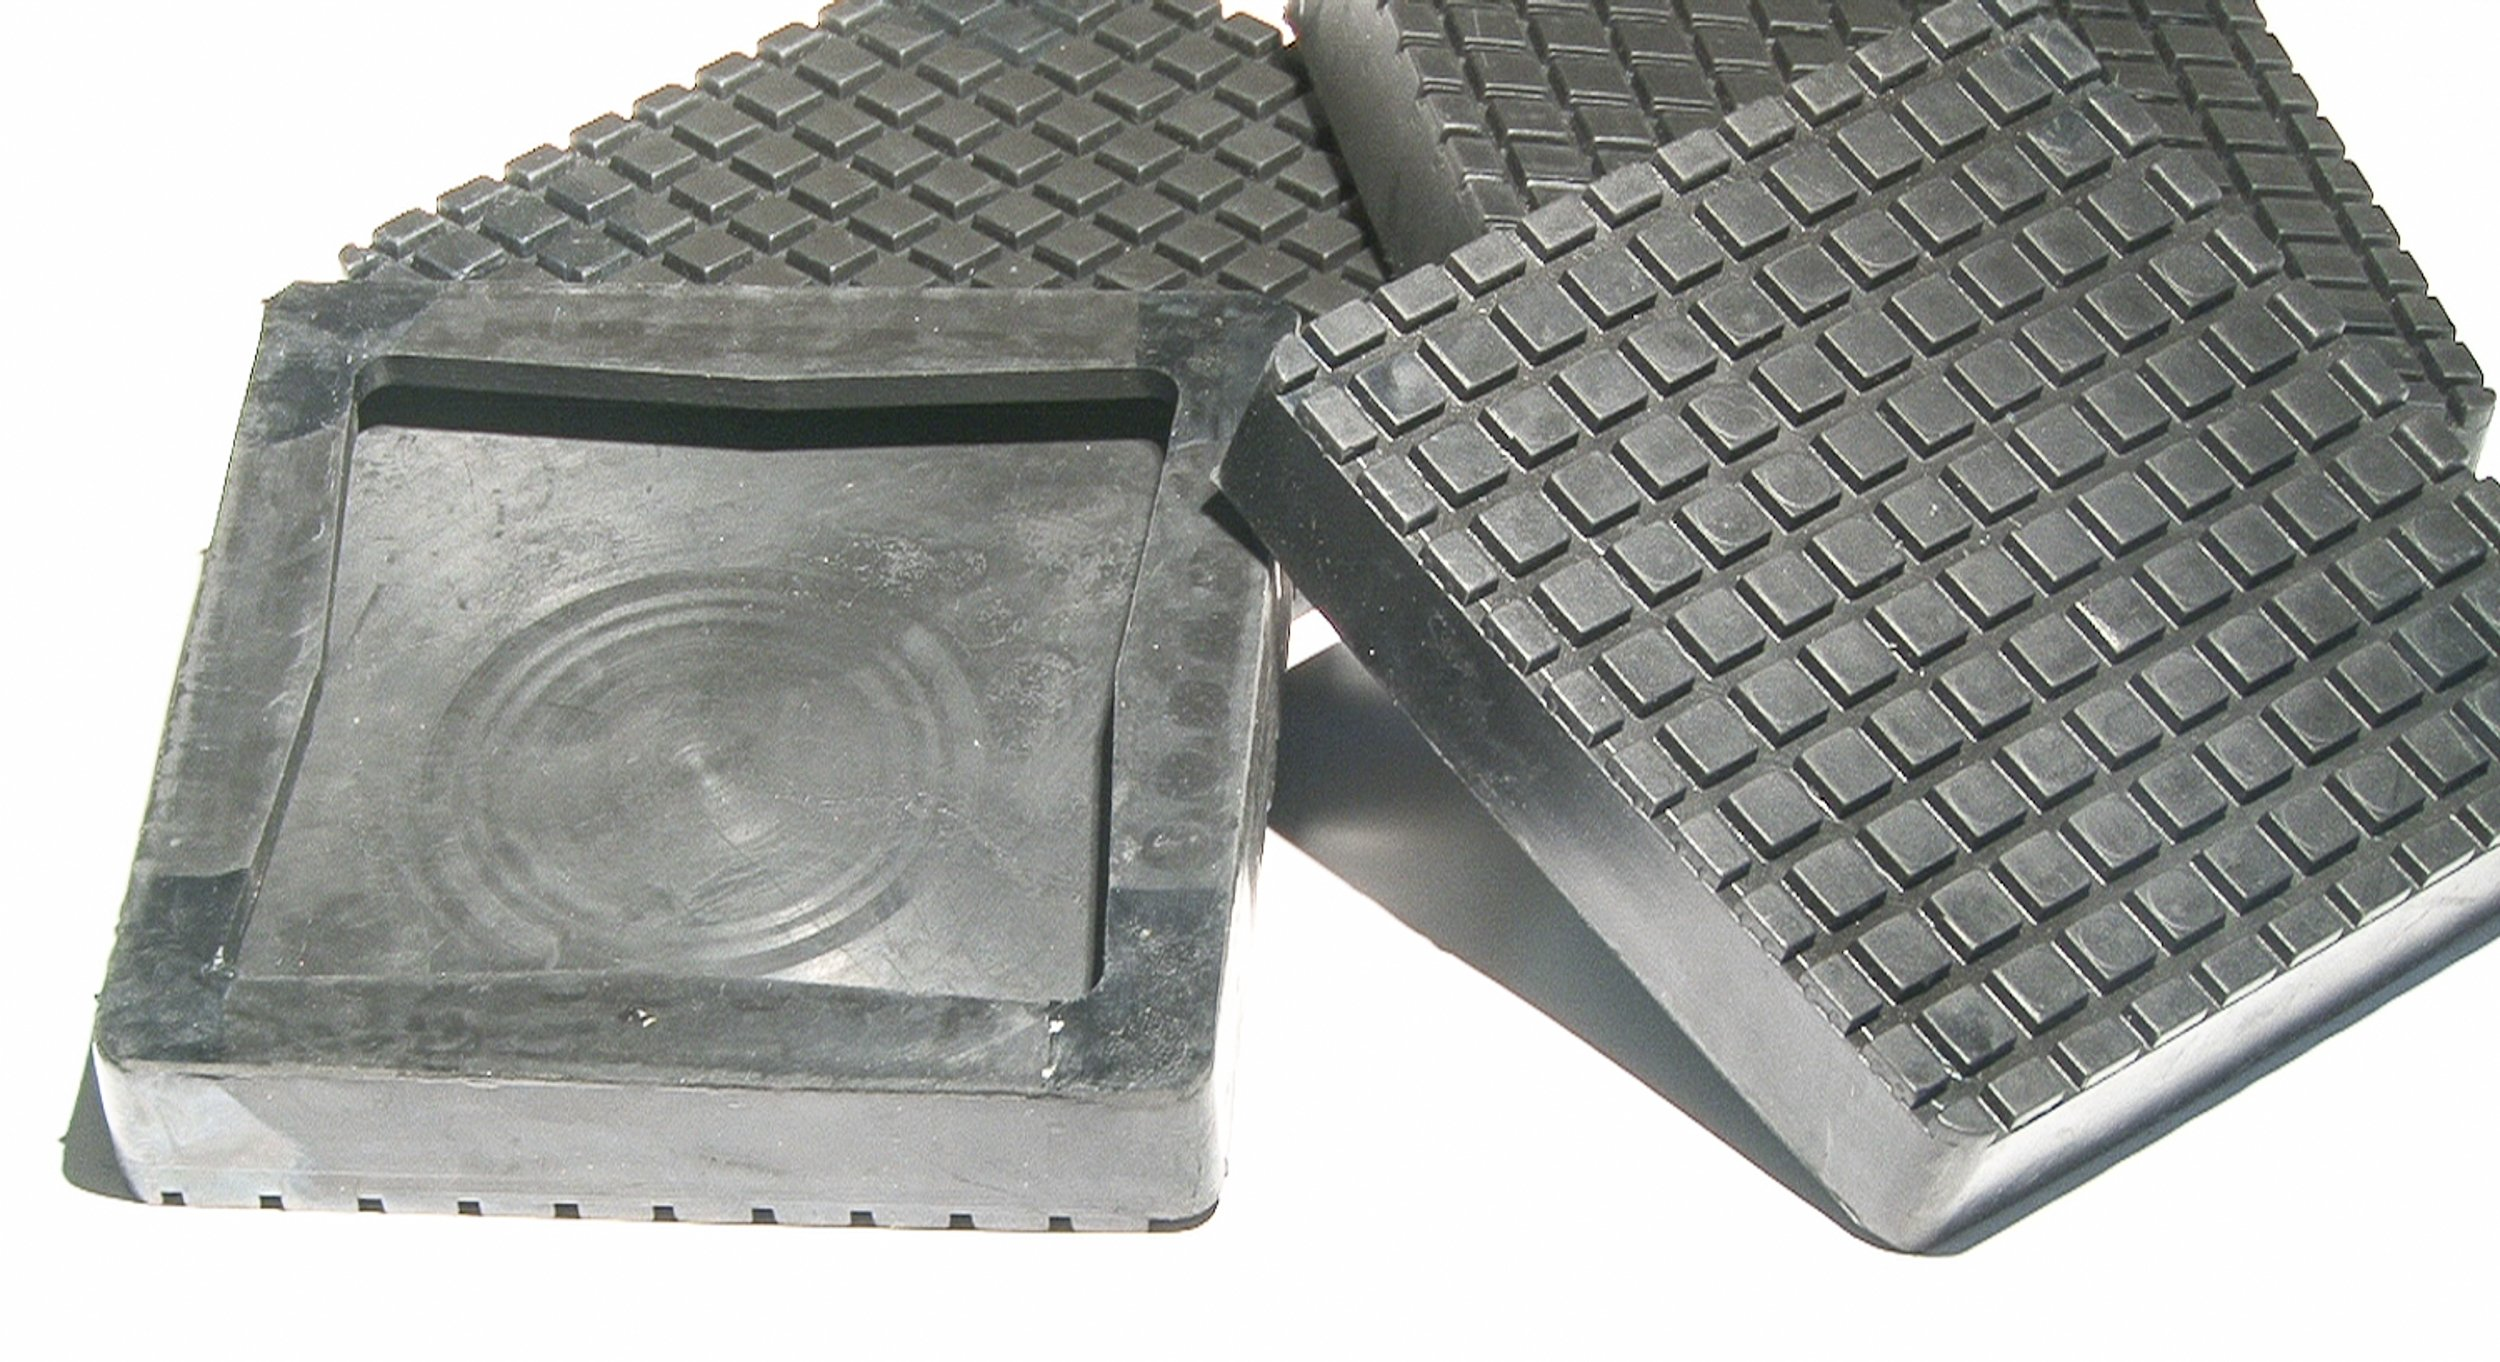 Auto Lift Parts - BendPak or Danmar Square Rubber Replacement arm Pads (Slip on Style) for 2 Post Lifts - Set of 4 by ALP